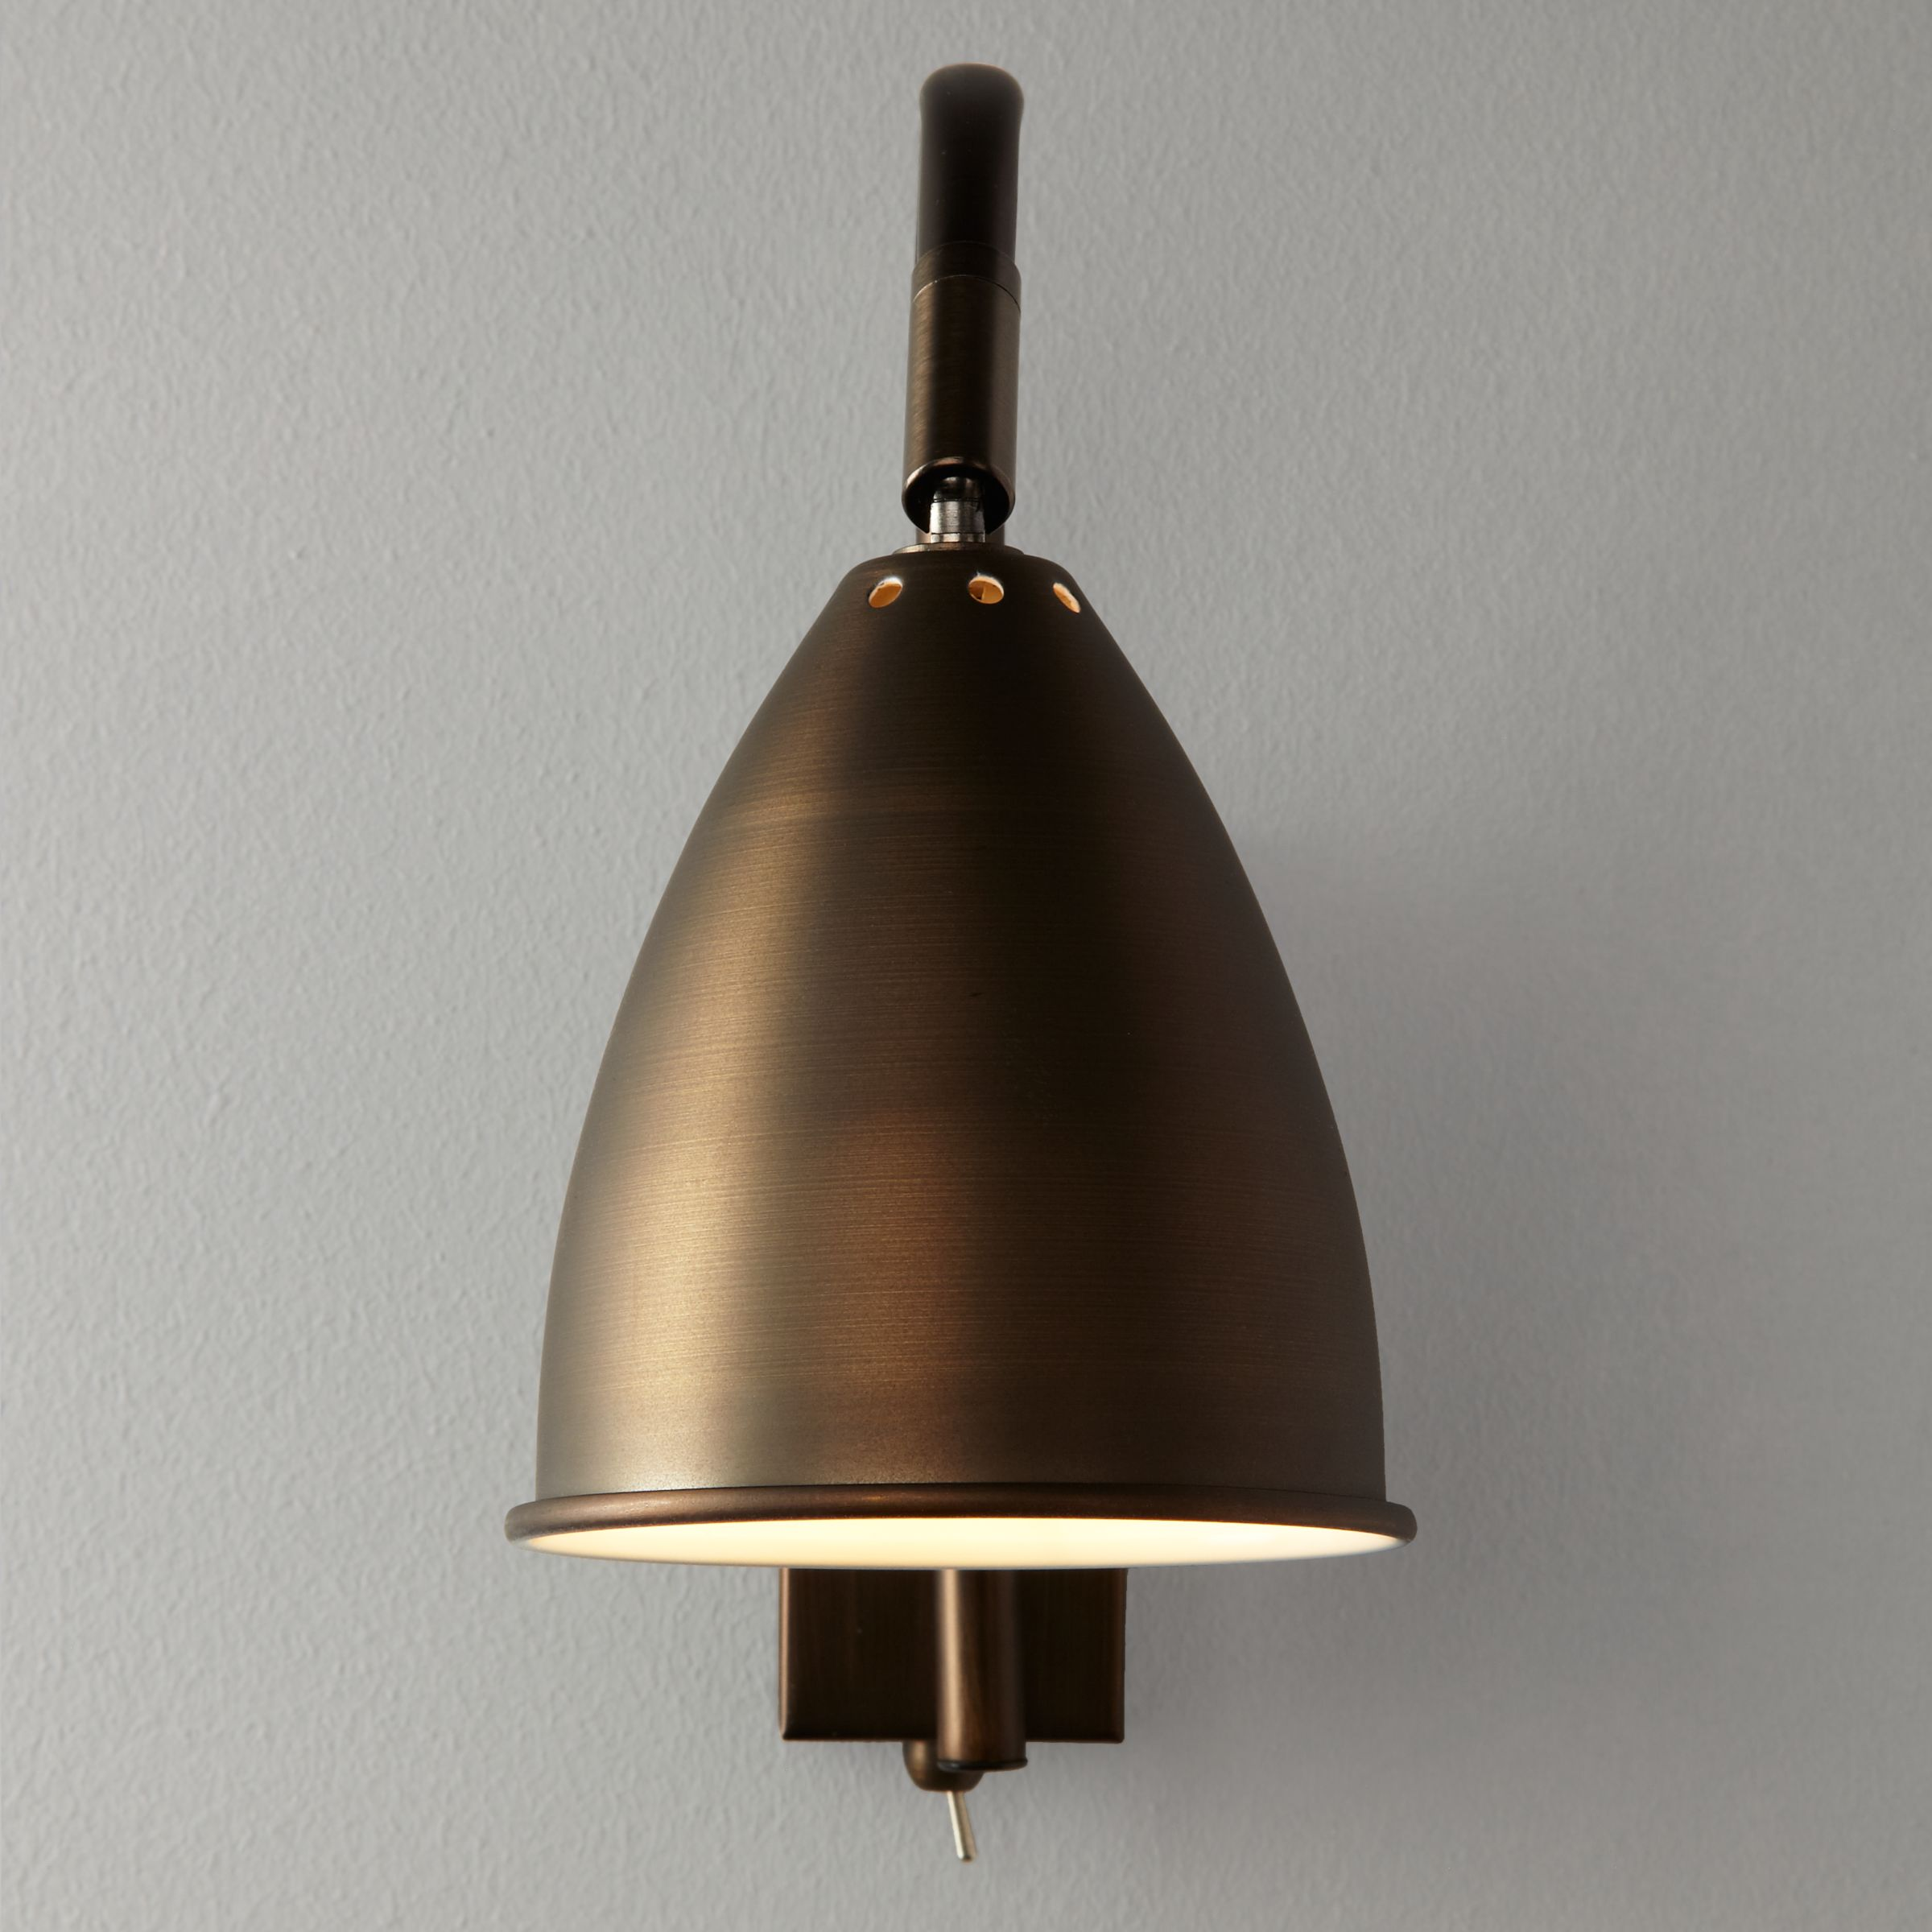 Buy John Lewis Chelsea Adjustable Wall Light John Lewis